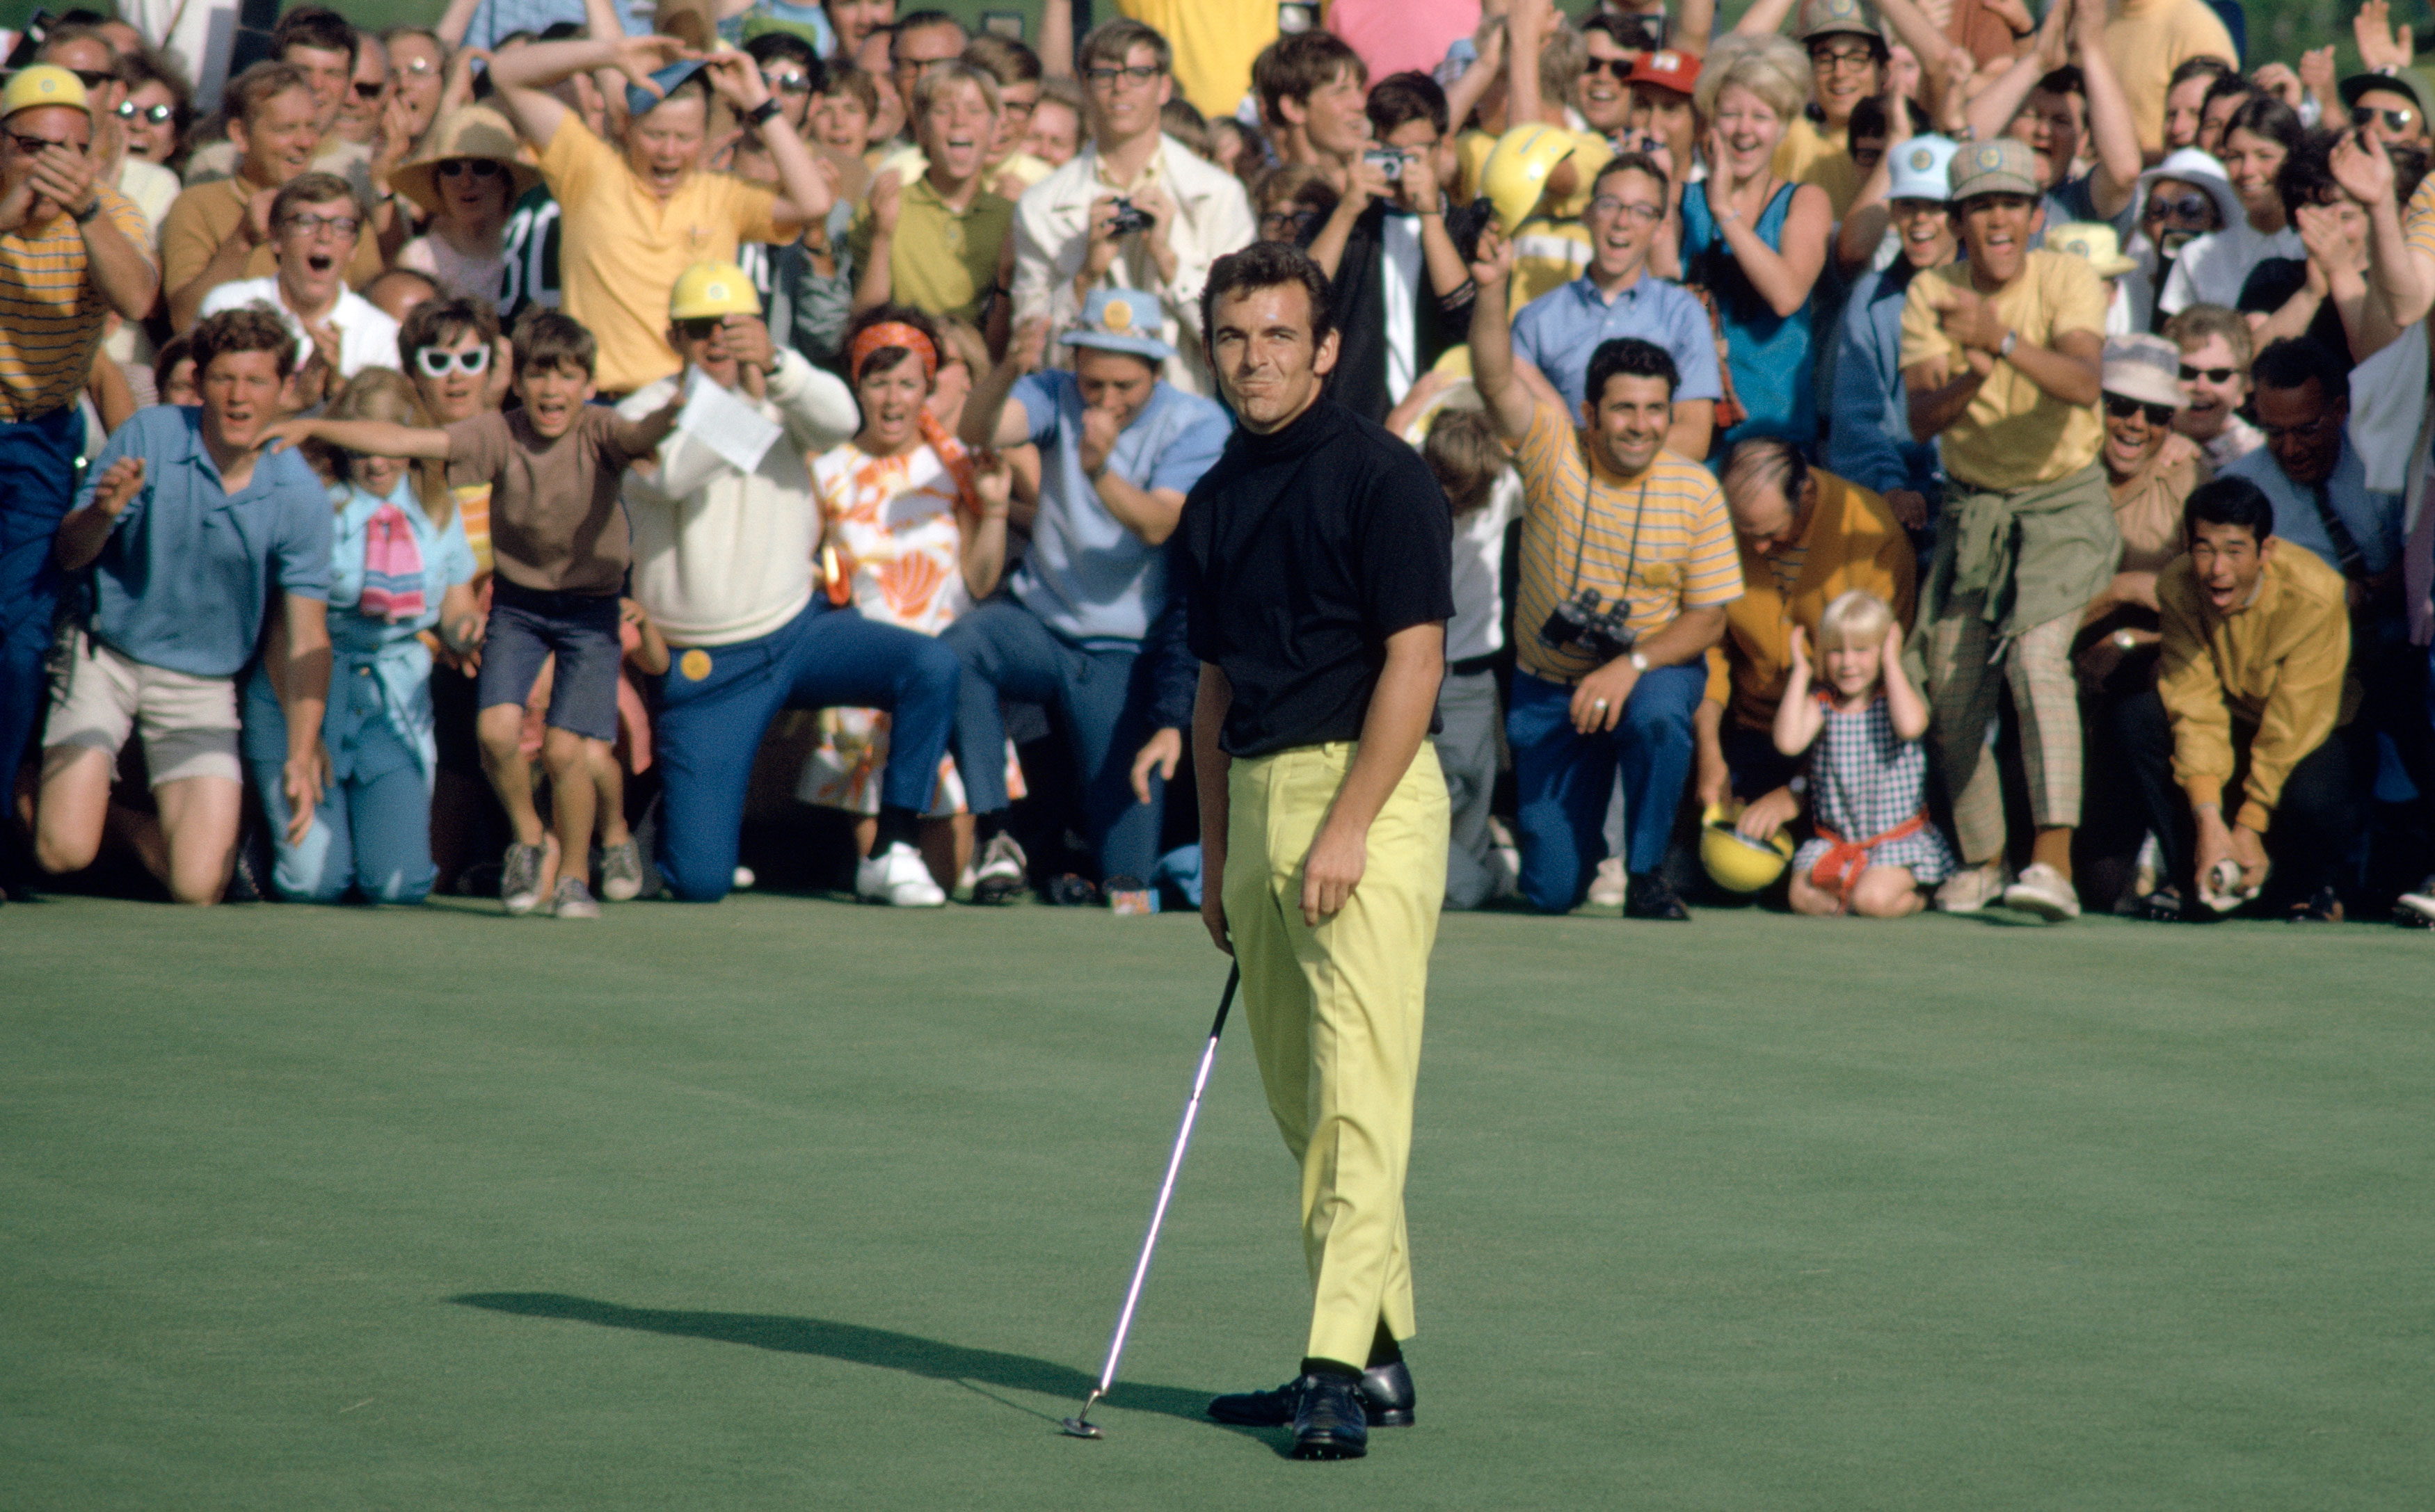 Why Tony Jacklin's 1970 U.S. Open win deserves more respect | Golf ...